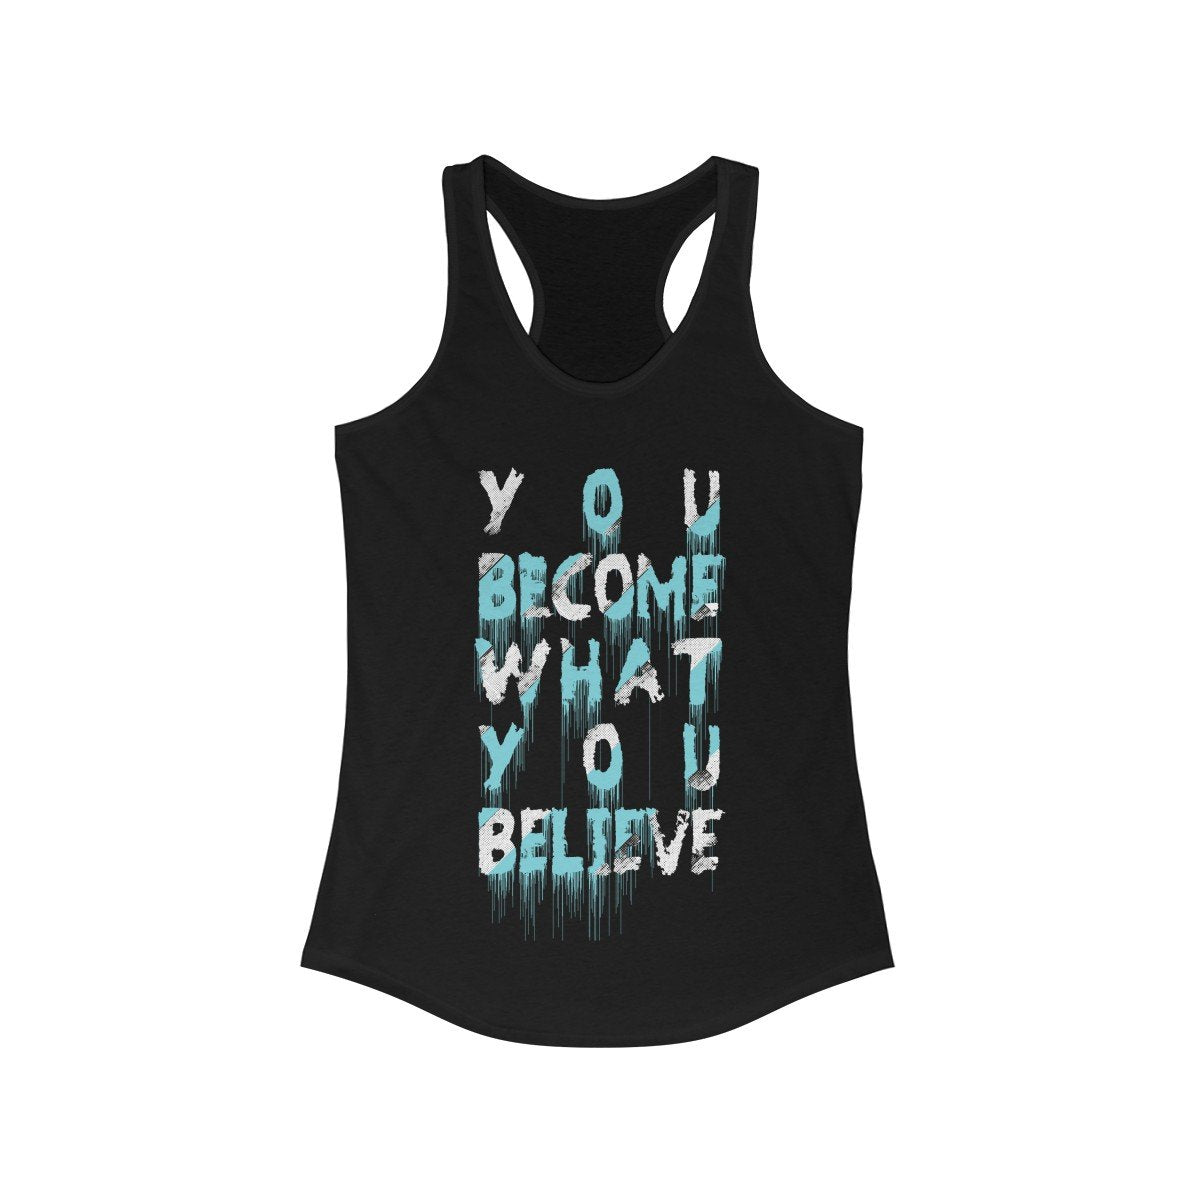 You Become what you Believe Racerback Tank Top